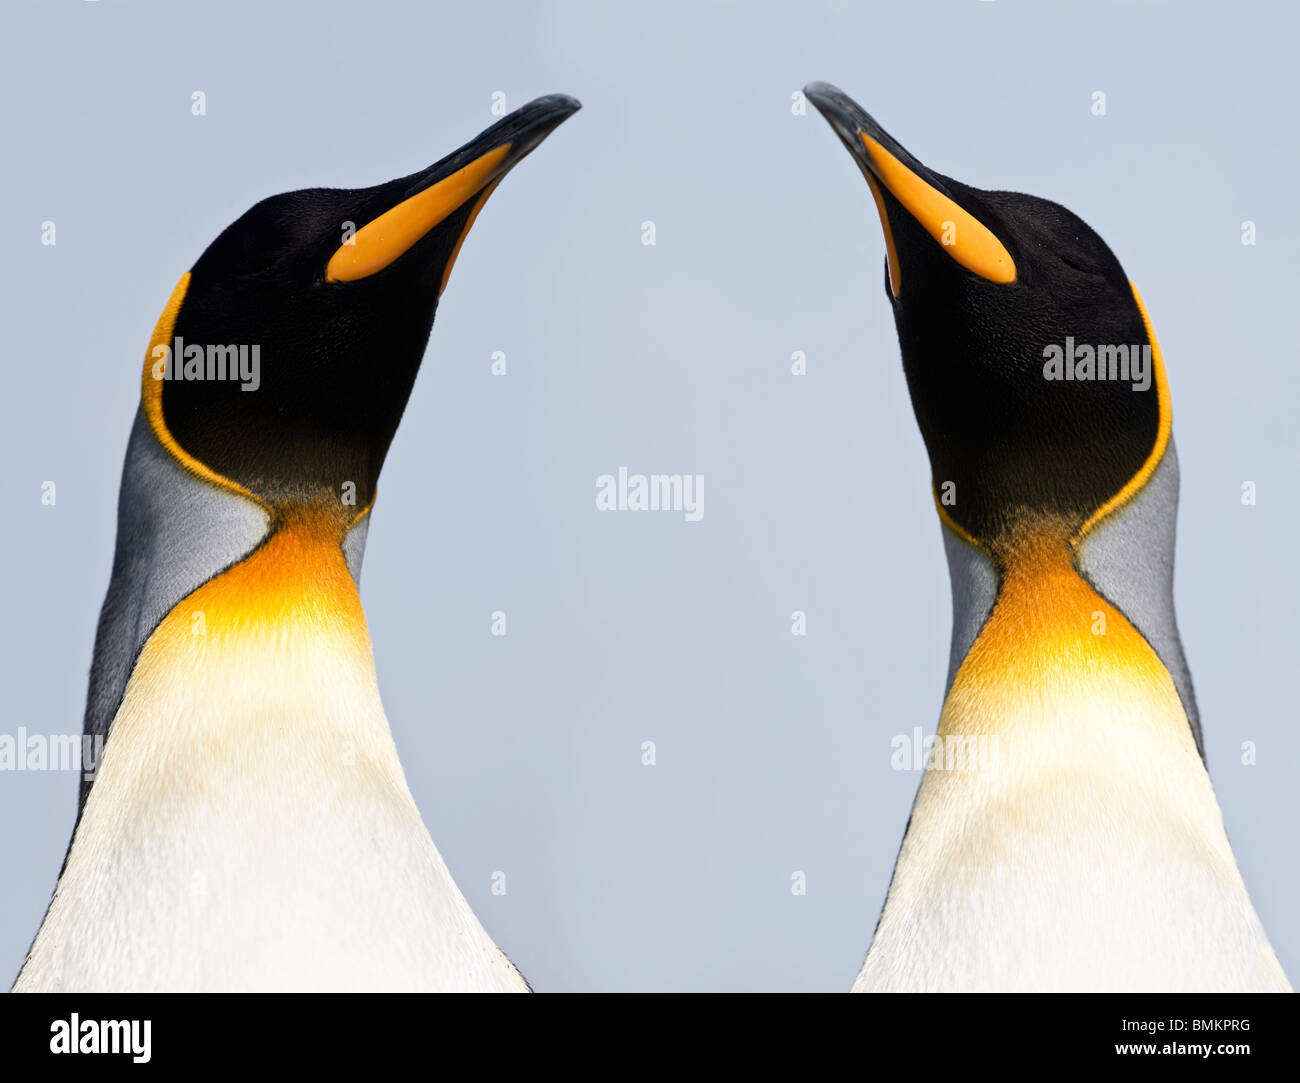 King Penguins. Salisbury Plain, South Georgia. - Stock Image